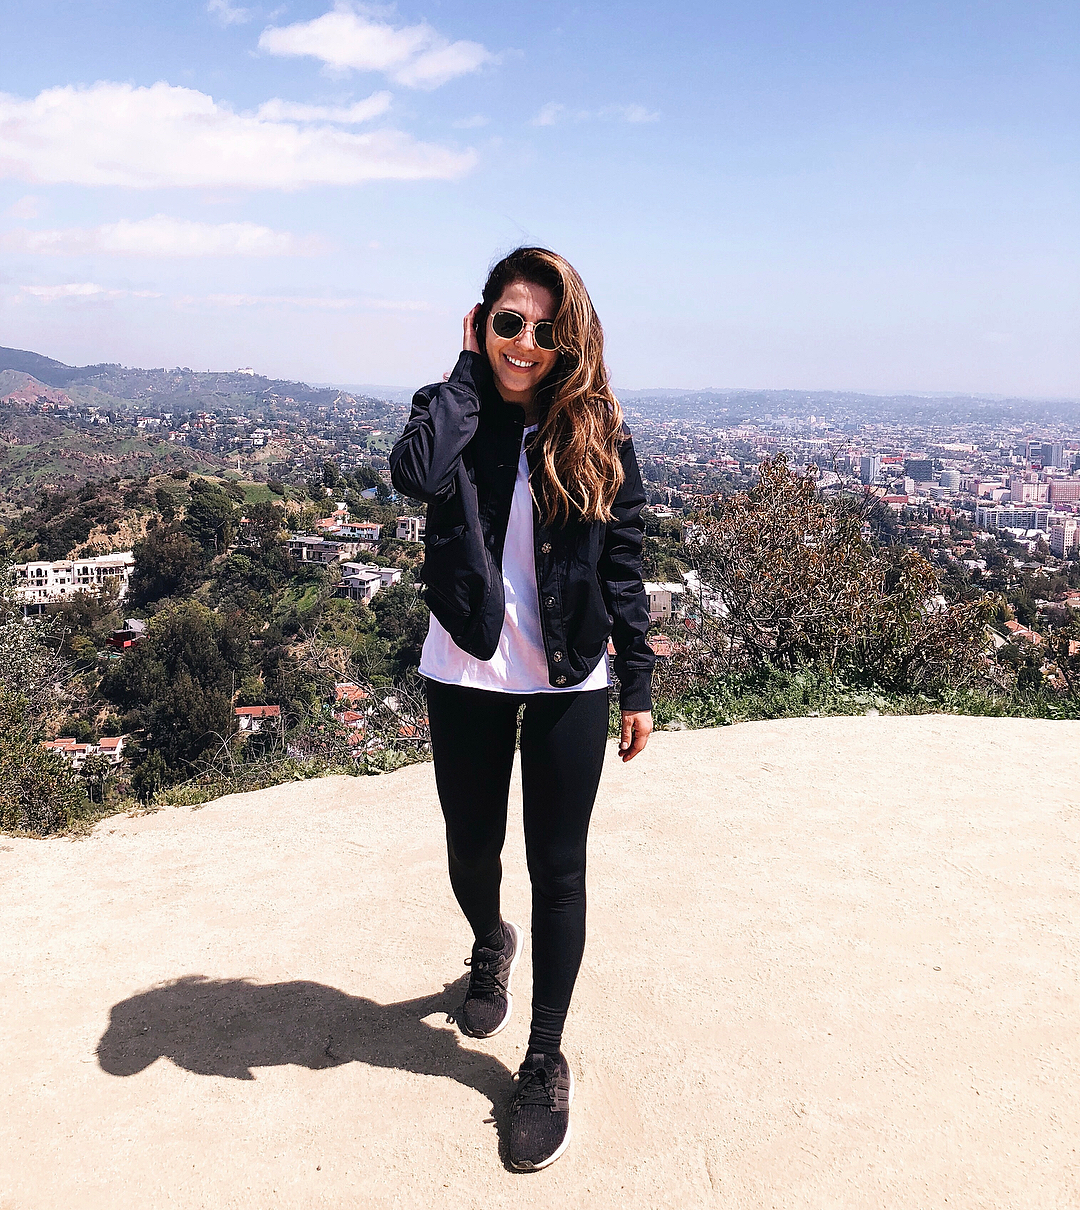 Hiking outfit LA